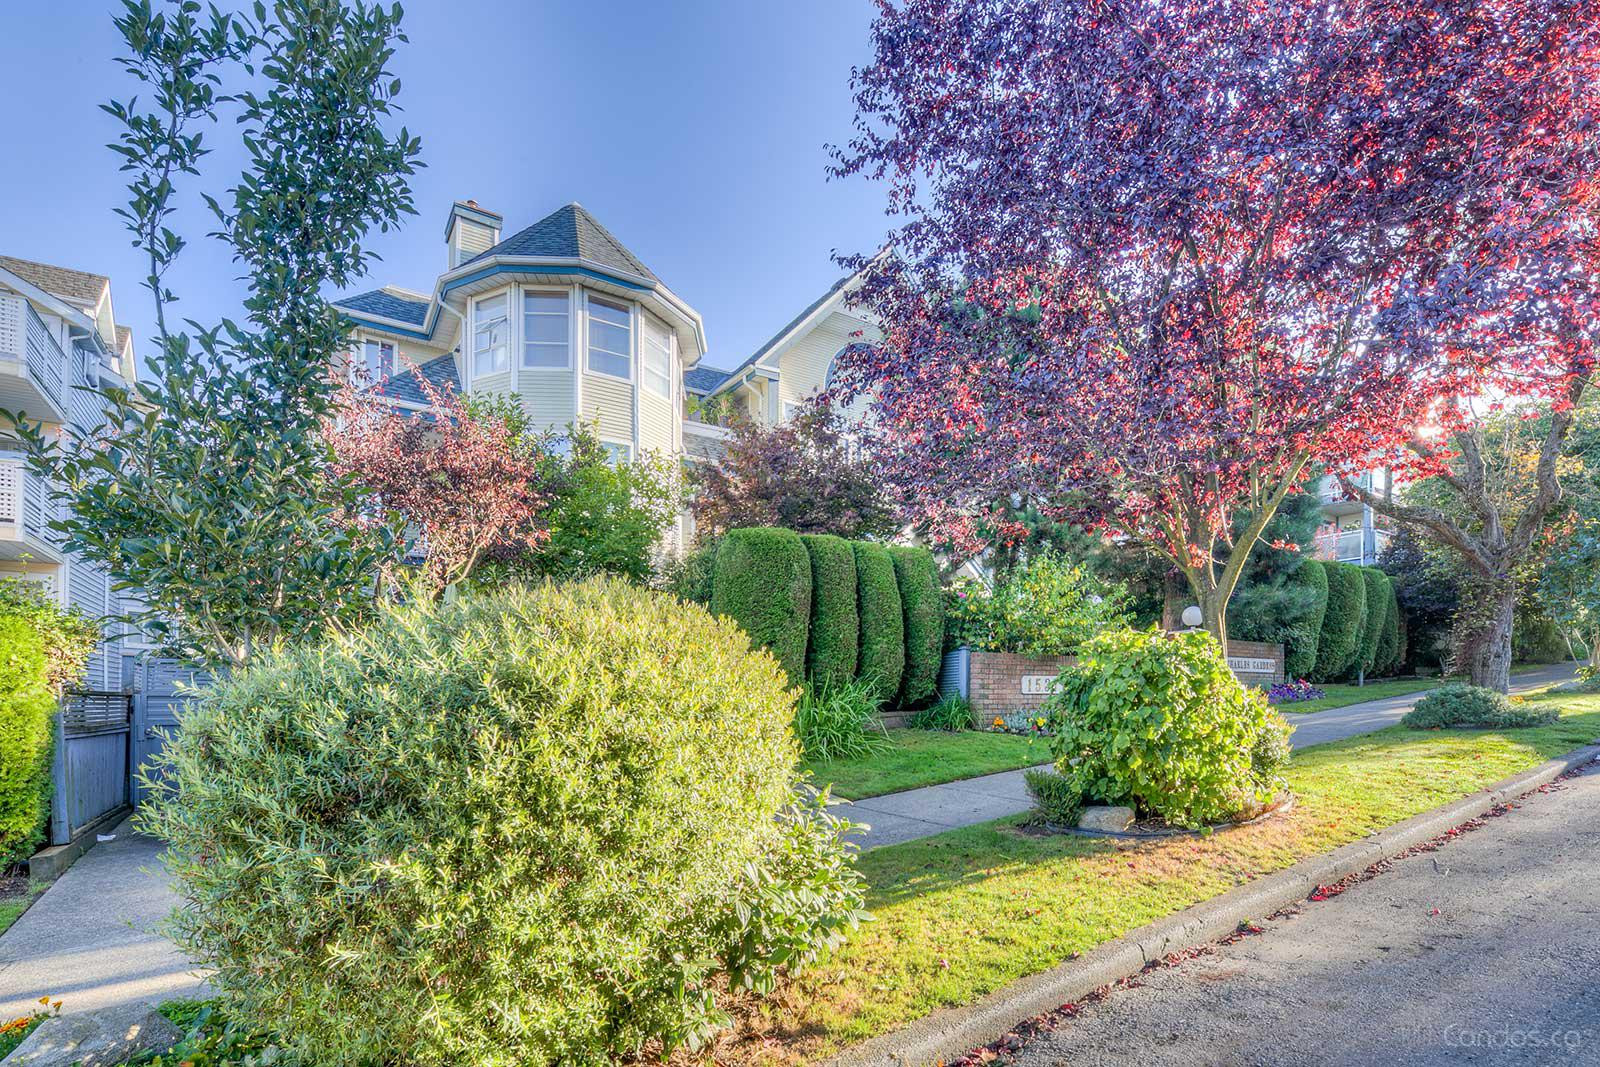 Charles Garden at 1537 Charles St, Vancouver 0